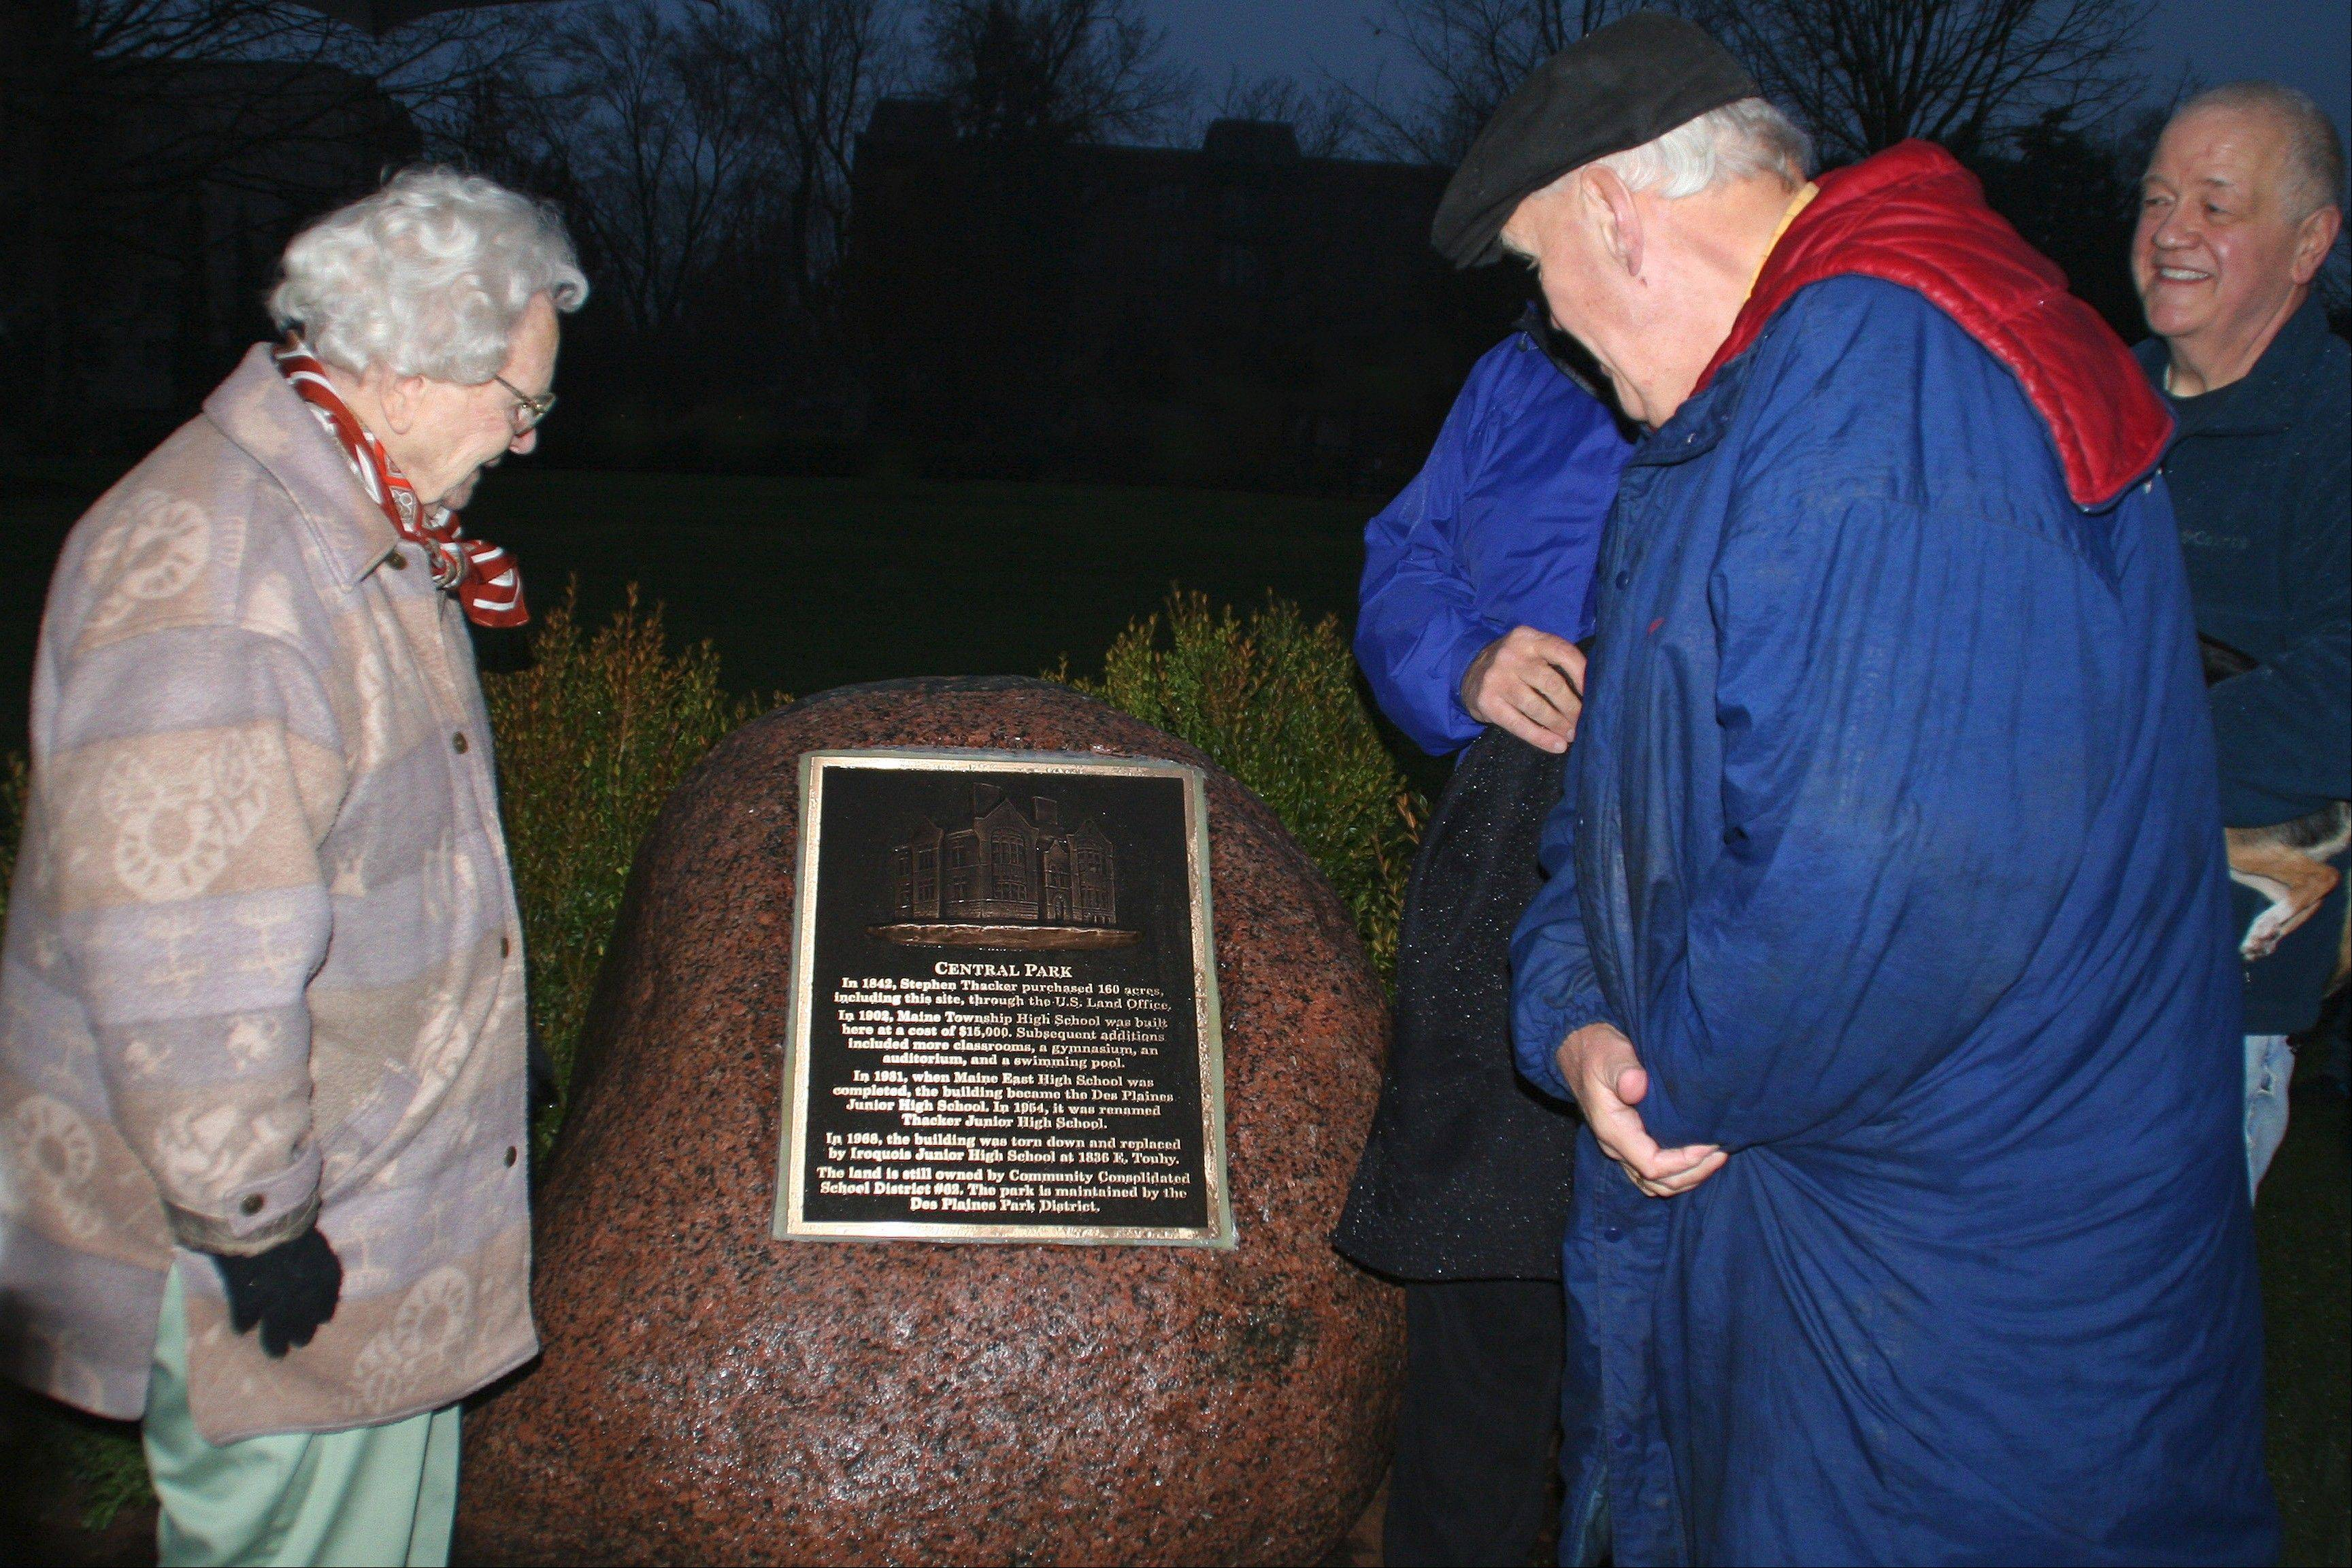 Marion Lutz, Des Plaines Junior High School graduating class of 1932, unveils the new historic marker in Central Park.